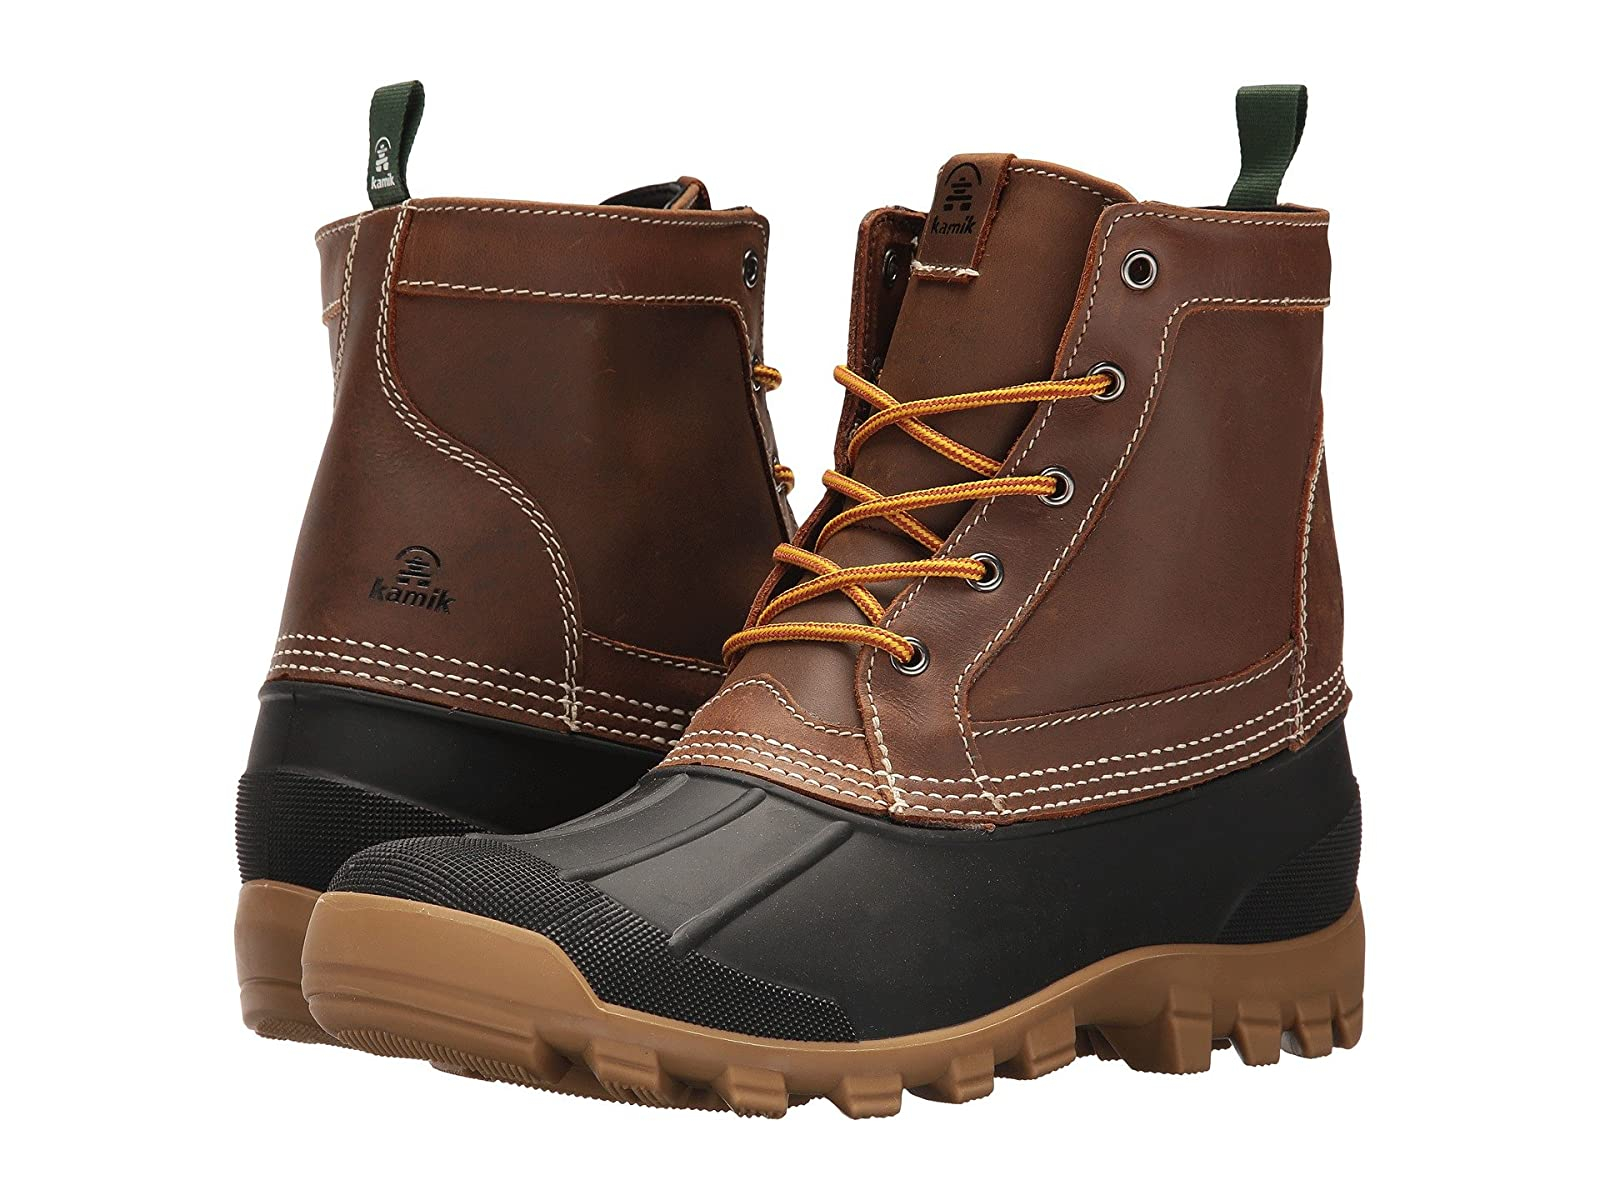 Kamik Yukon 5Affordable and distinctive shoes